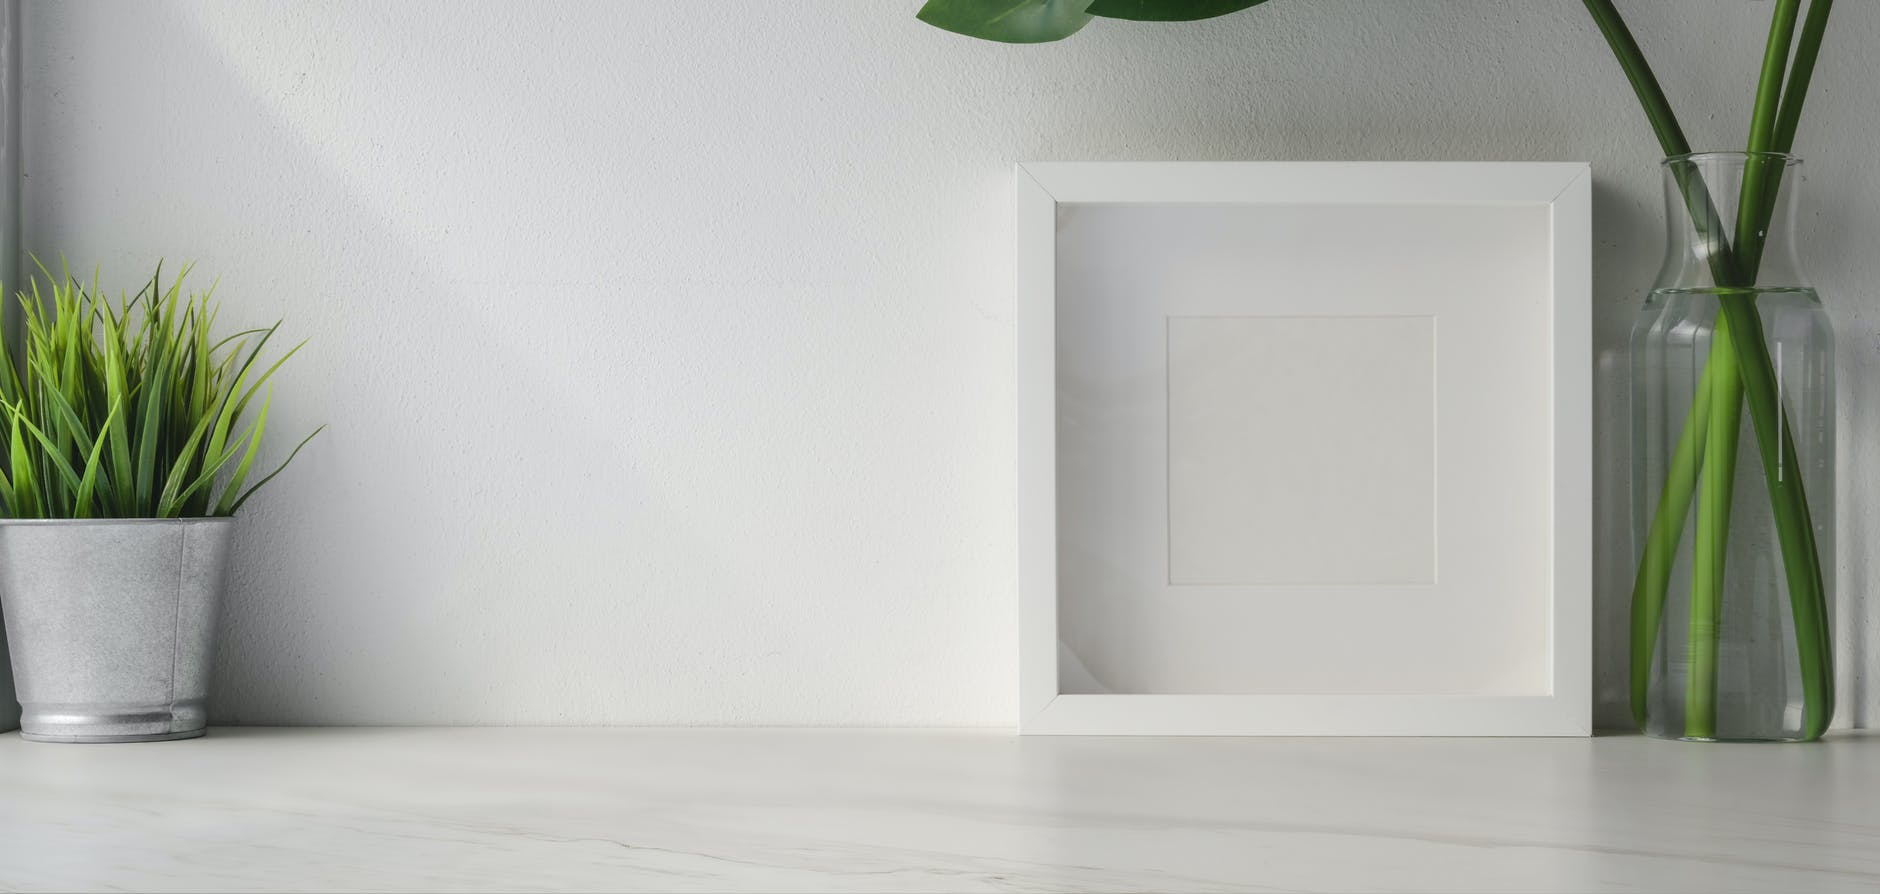 white wooden door on white wall